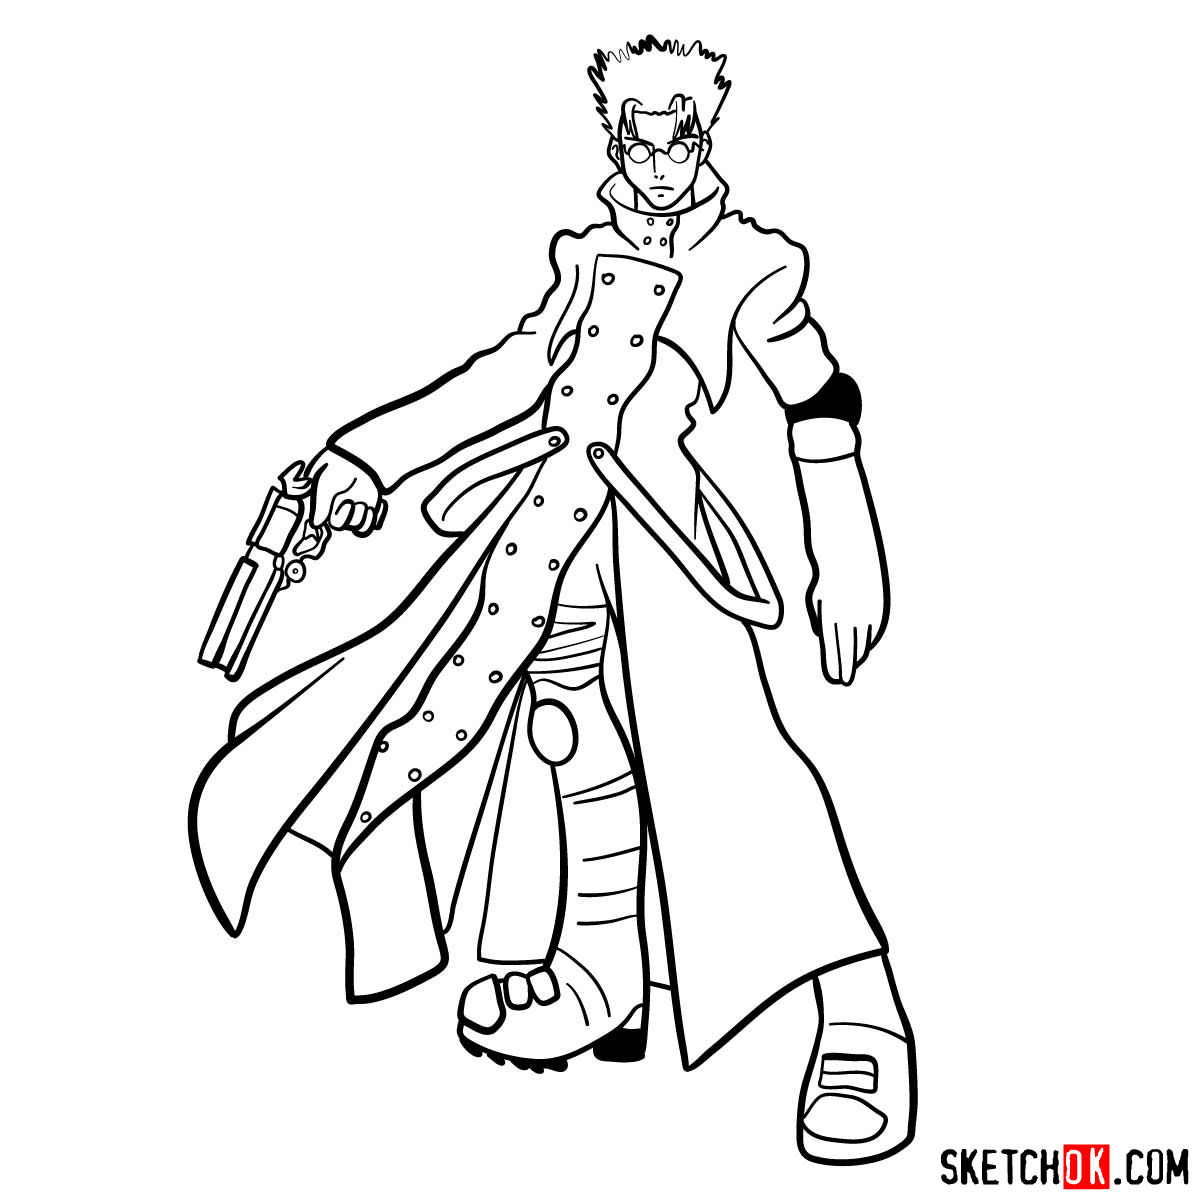 How to draw Vash the Stampede from Trigun anime